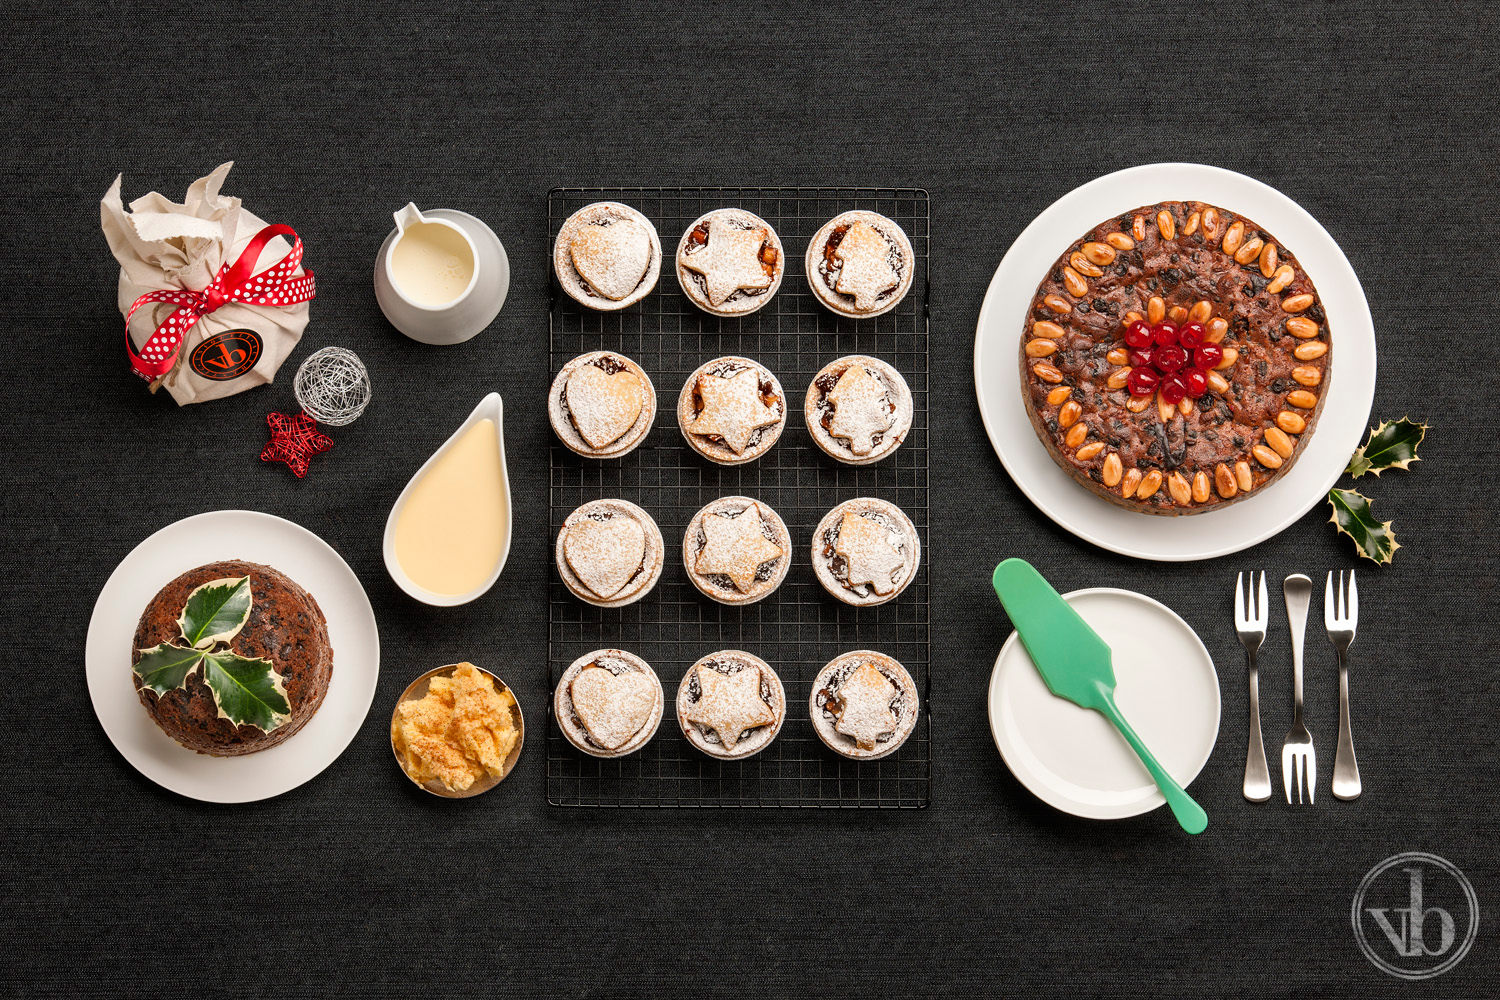 Special occasions require specialty treats made from seasonal ingredients. Our range of signature hot cross buns signal Easter's approach, our hand-made Trophy Winning Christmas Puddings and fruit mince tartlets are the taste of Christmas, whilst our festive cupcakes and desserts for Father's Day, Mother's Day and even Halloween ensure that you have the perfect treat to share with friends and loved ones.